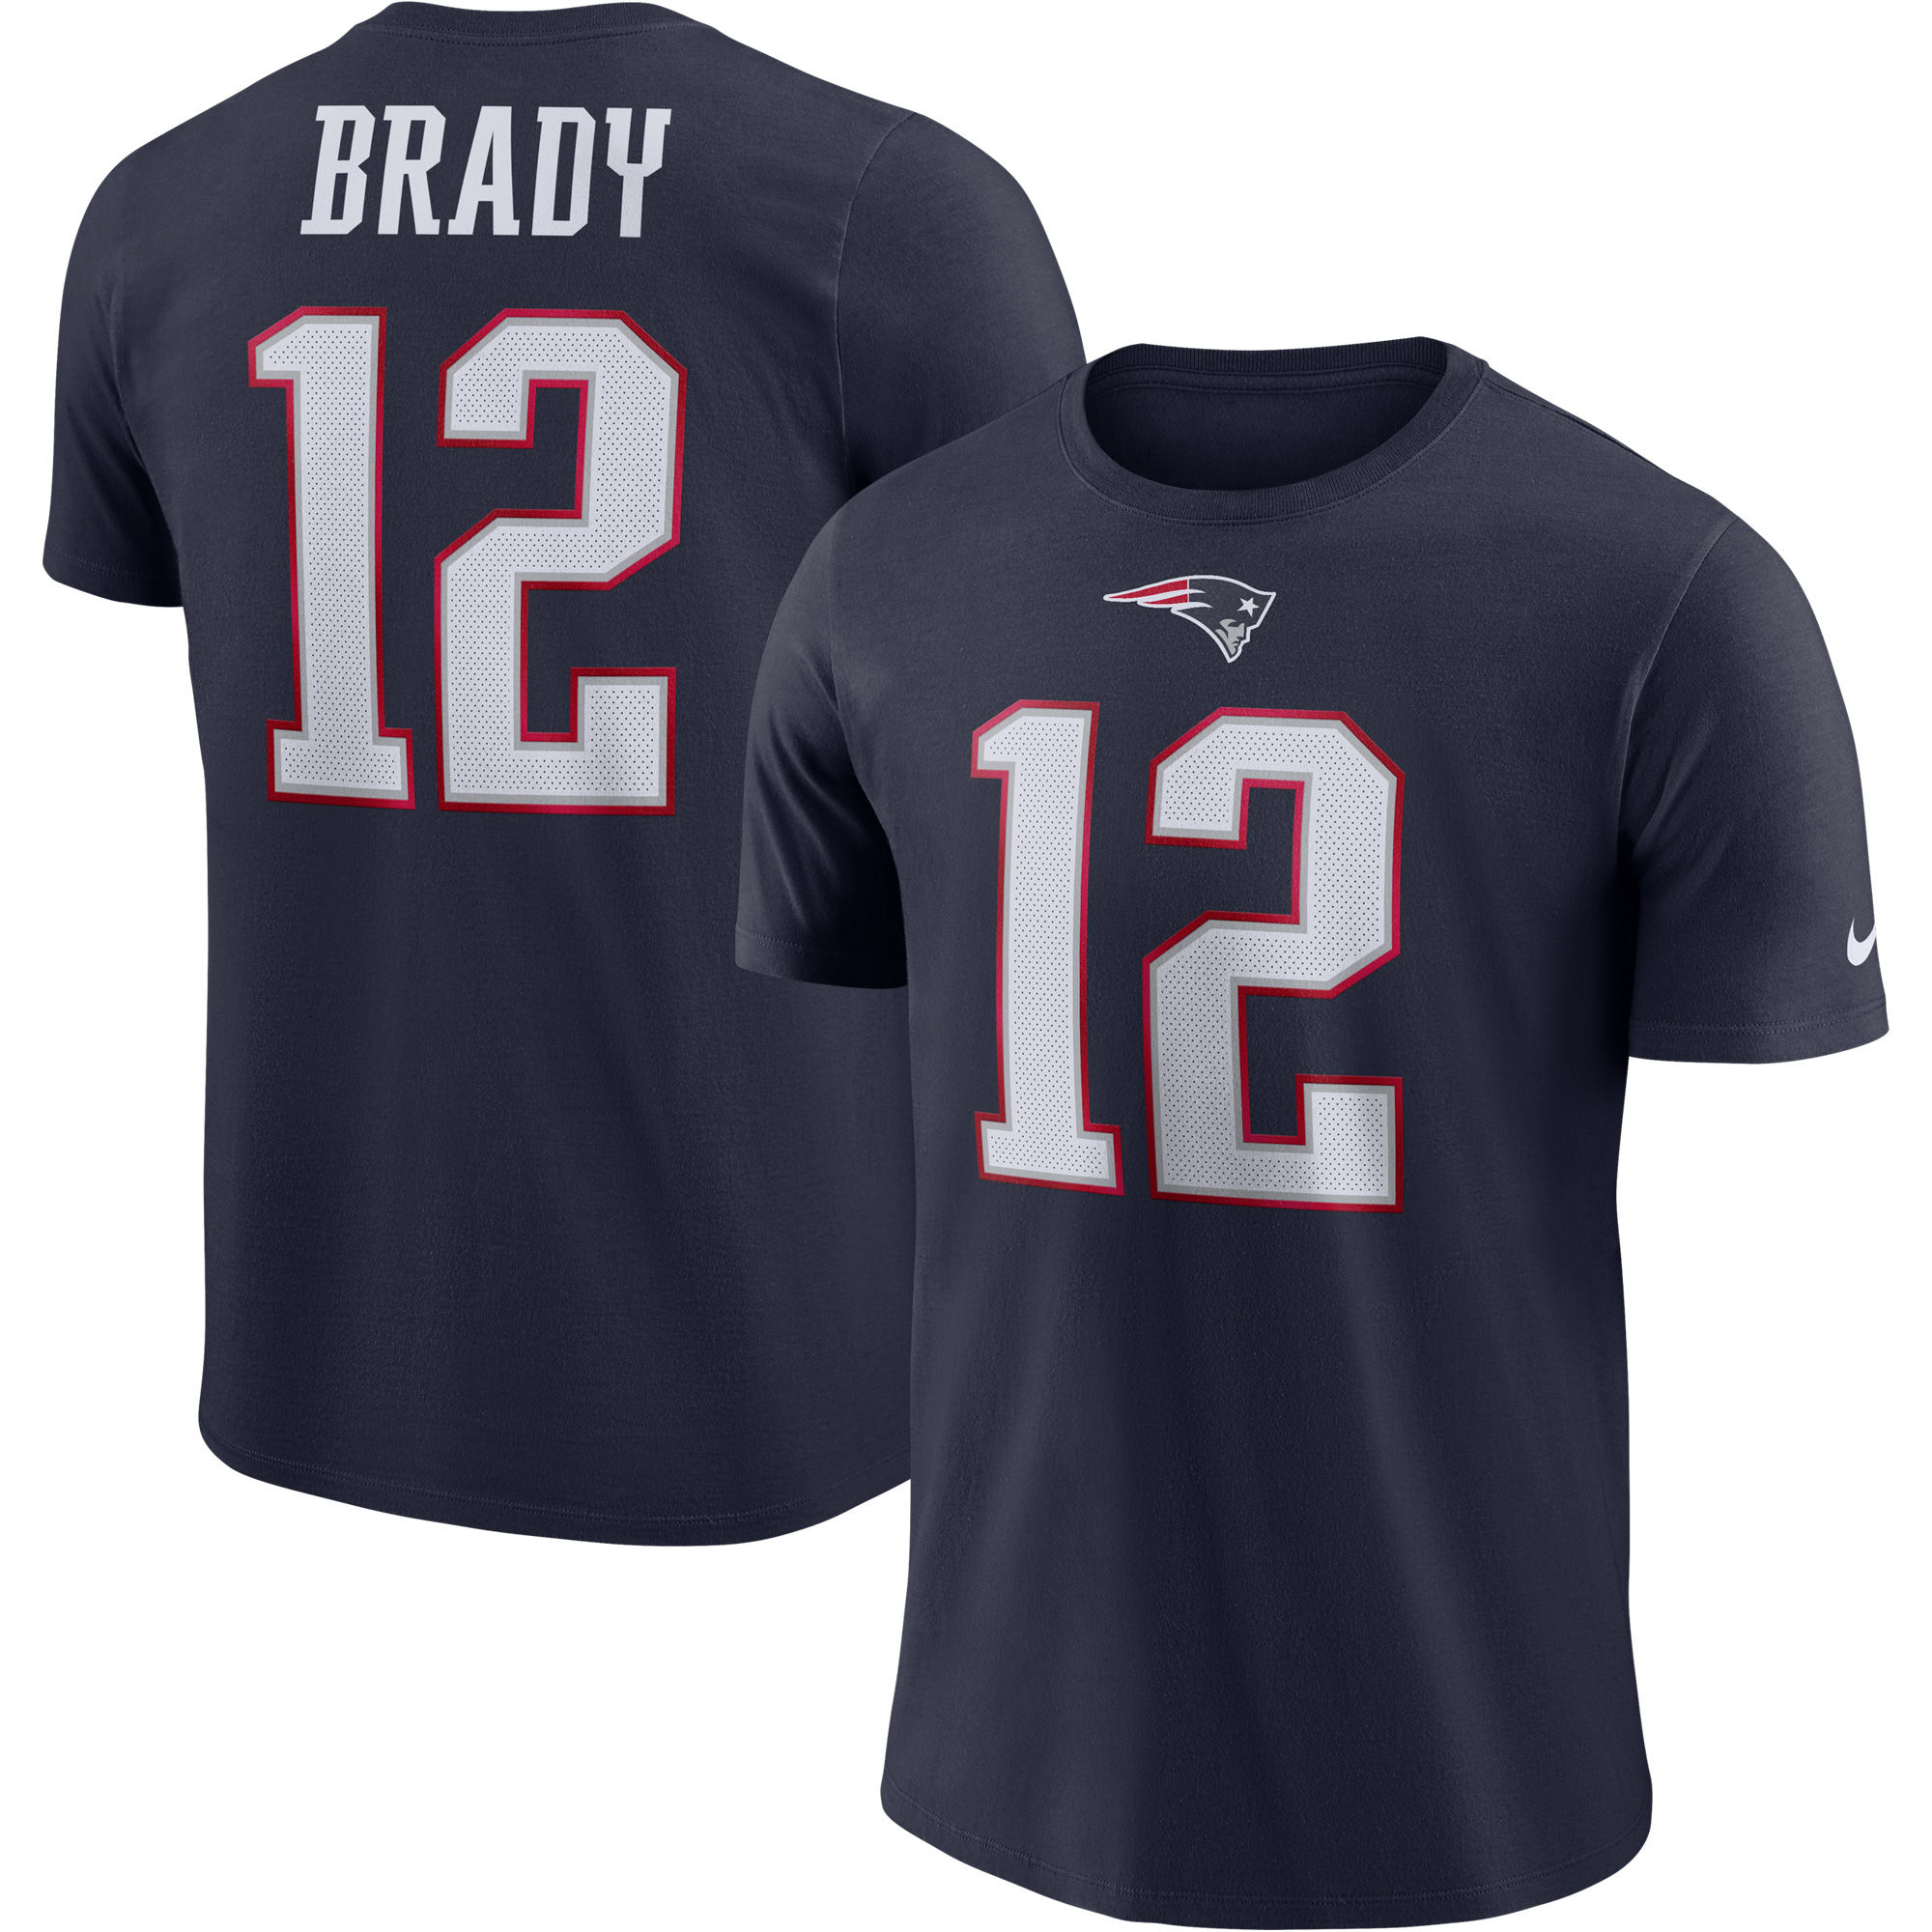 Tom Brady New England Patriots Nike Player Pride Name & Number Performance T-Shirt - Navy